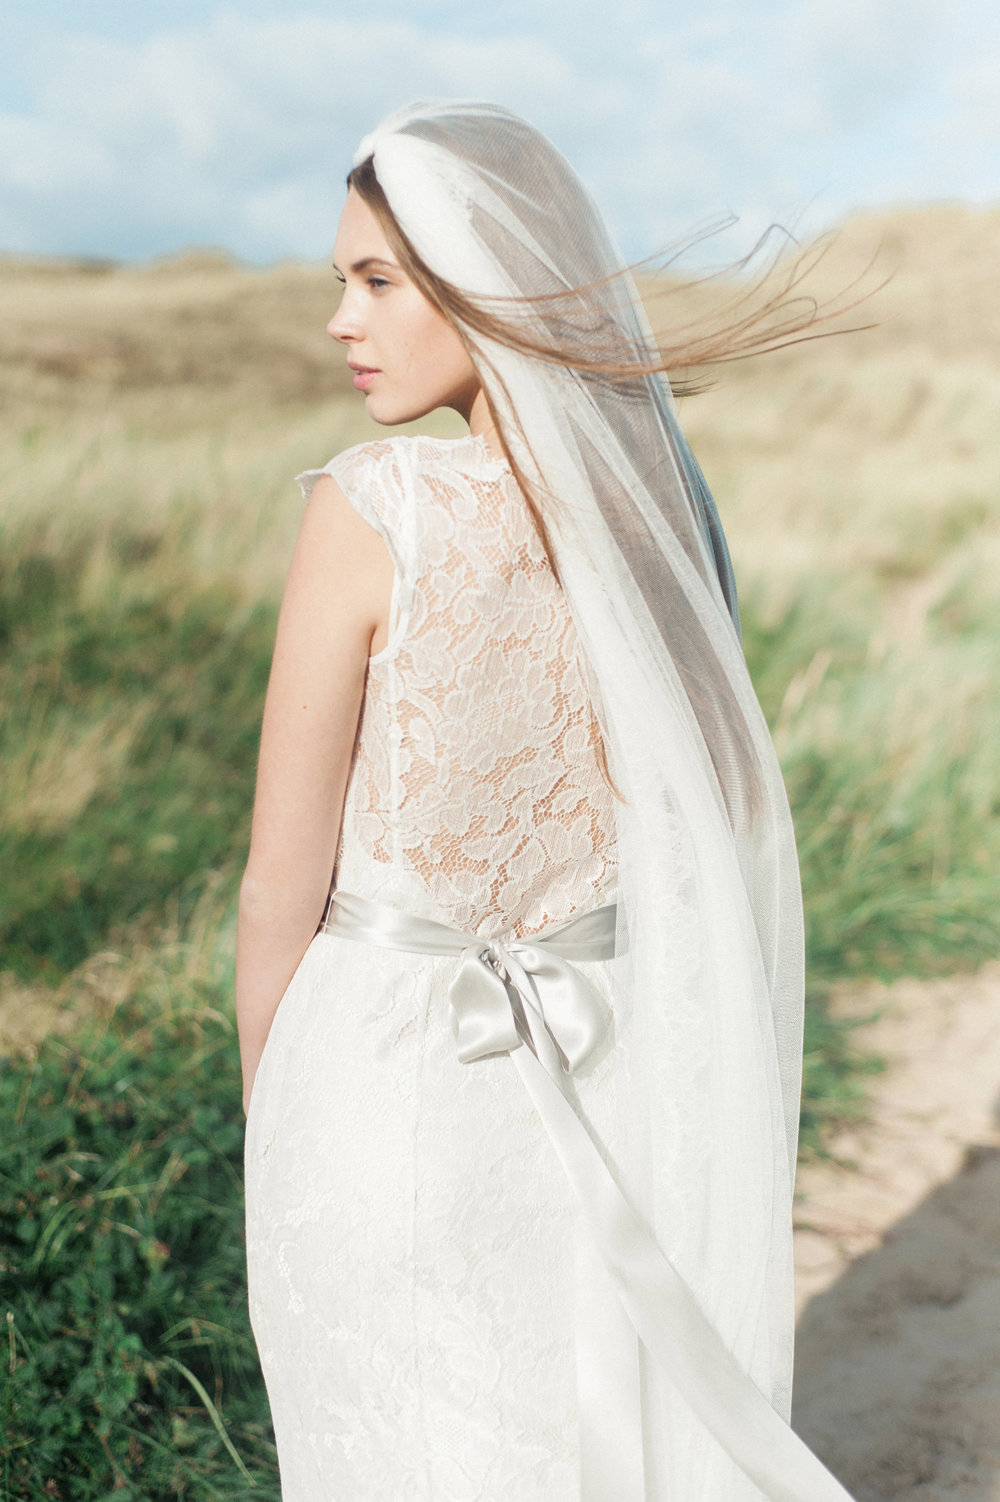 Kate-Beaumont-Wedding-Dresses-Formby-Beach-Emma-Pilkington-6.jpg